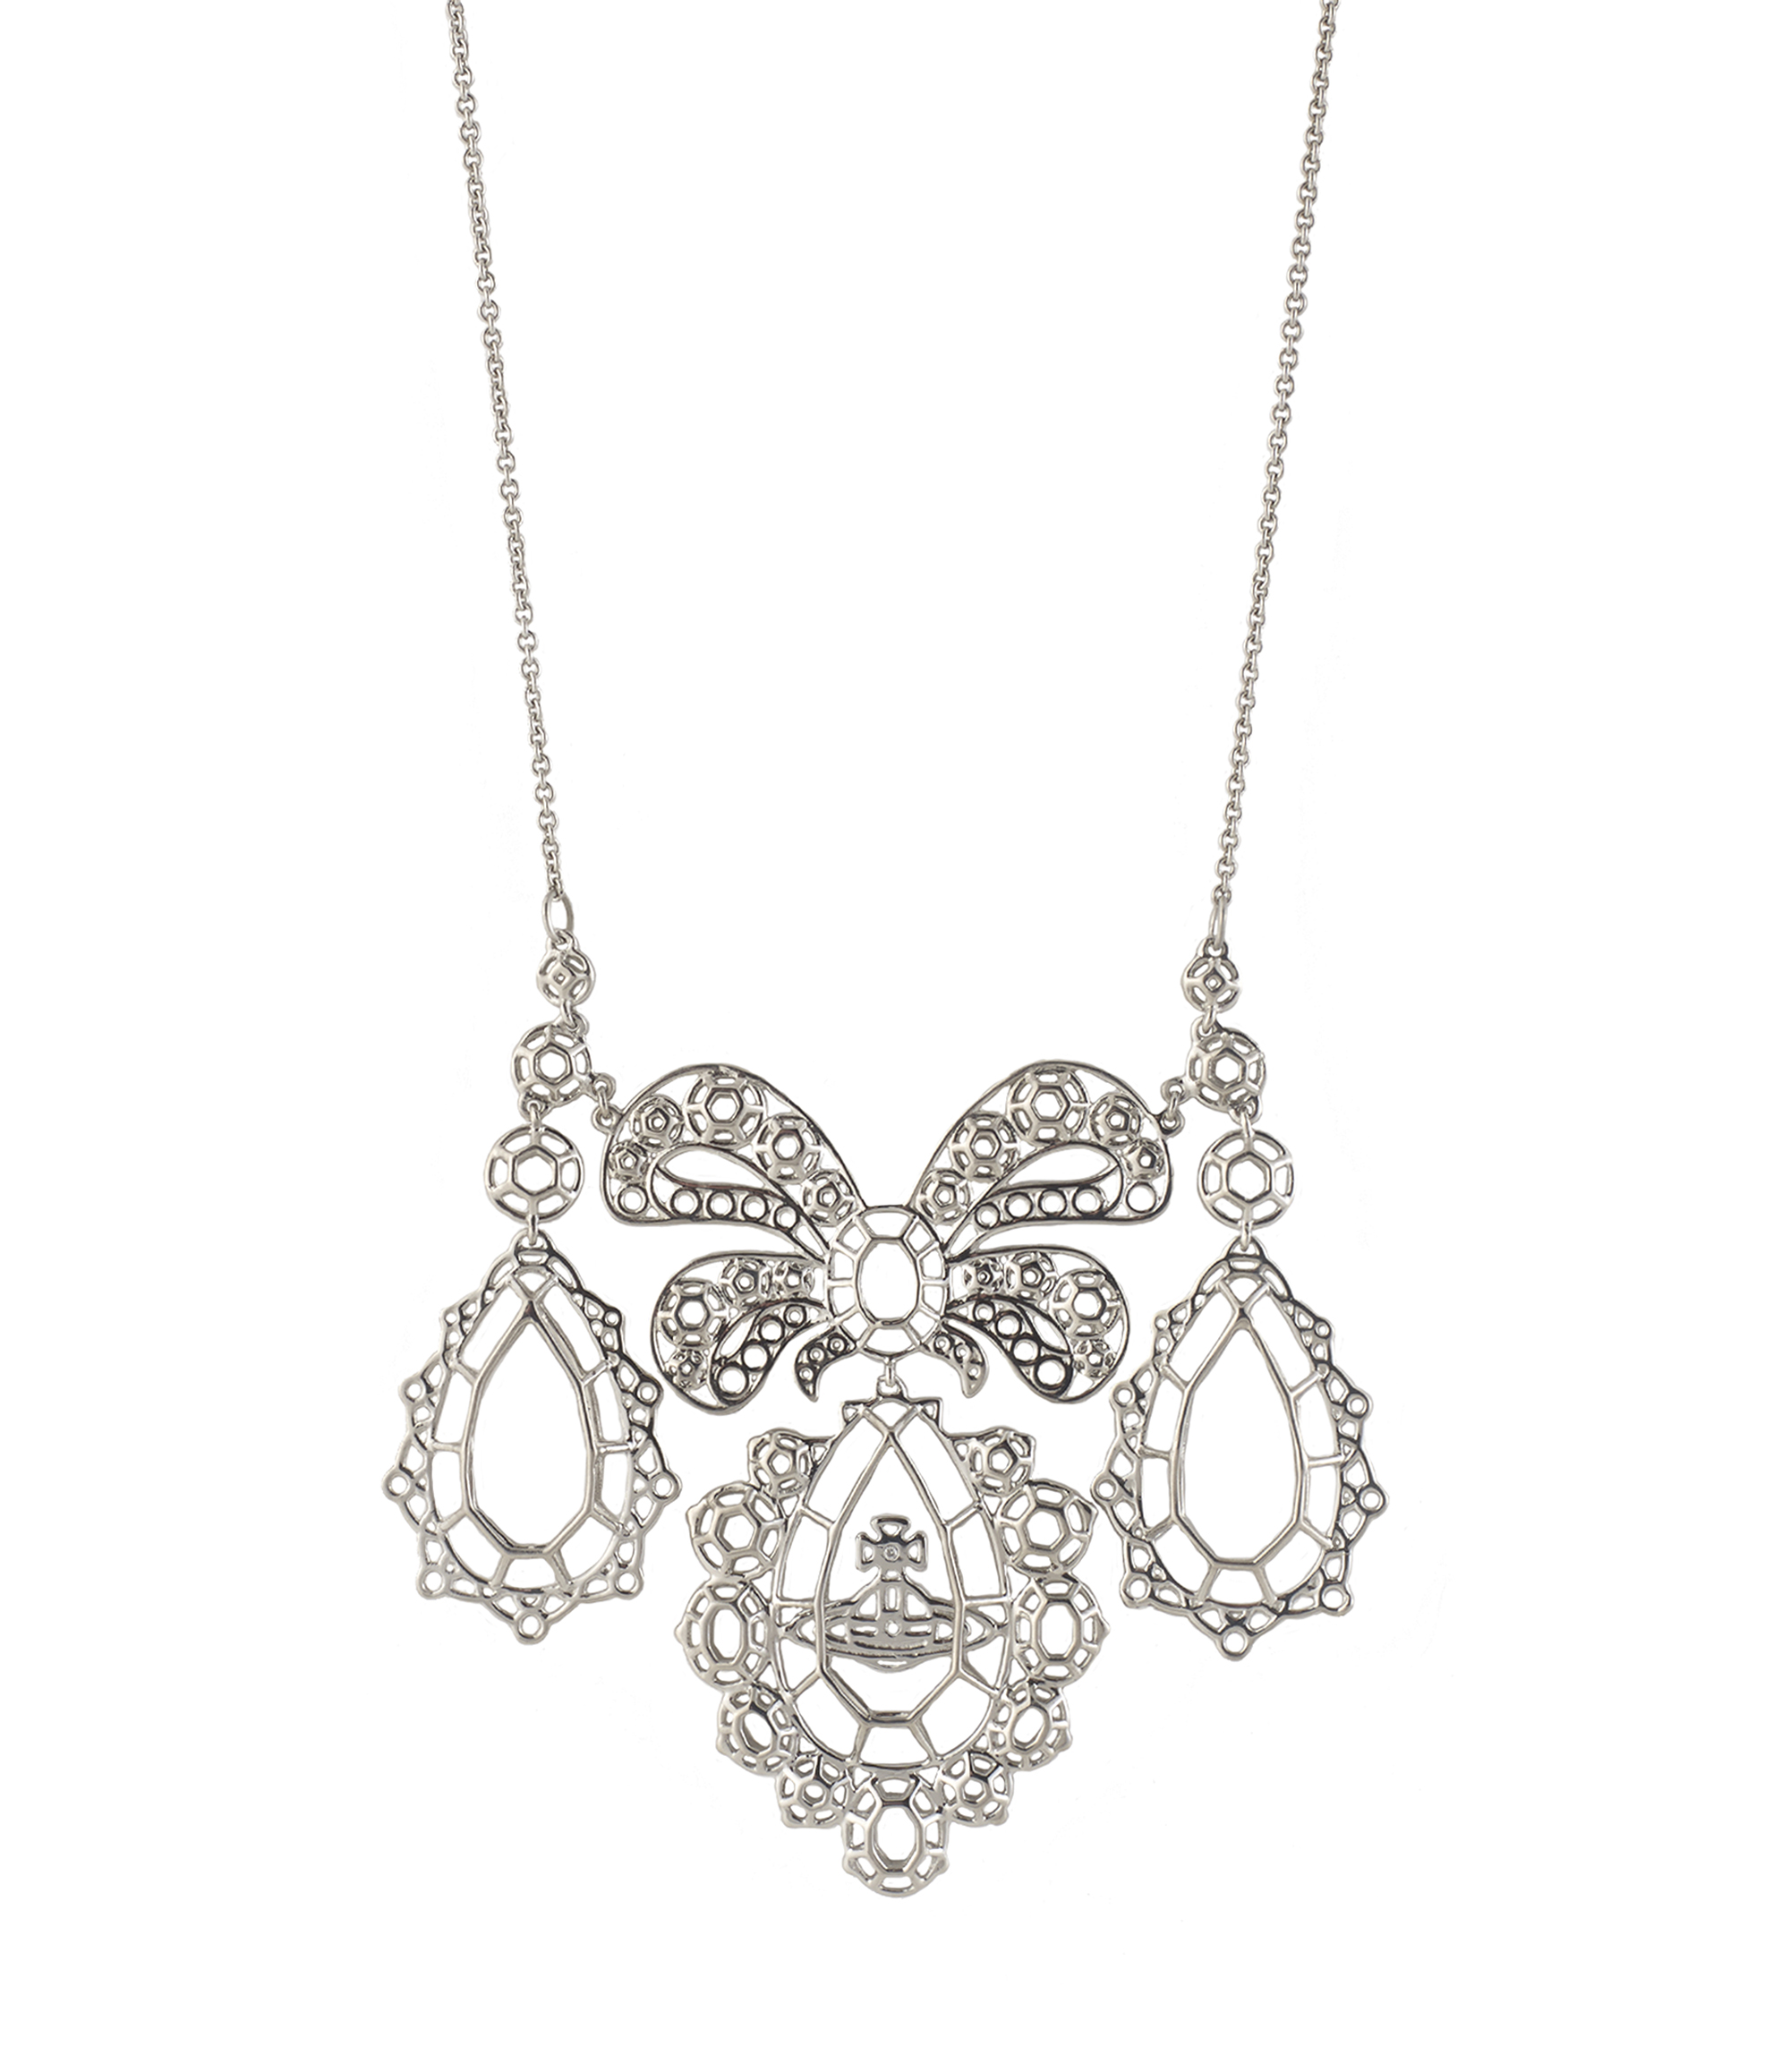 Vivienne Westwood Palladium Gainsborough Necklace